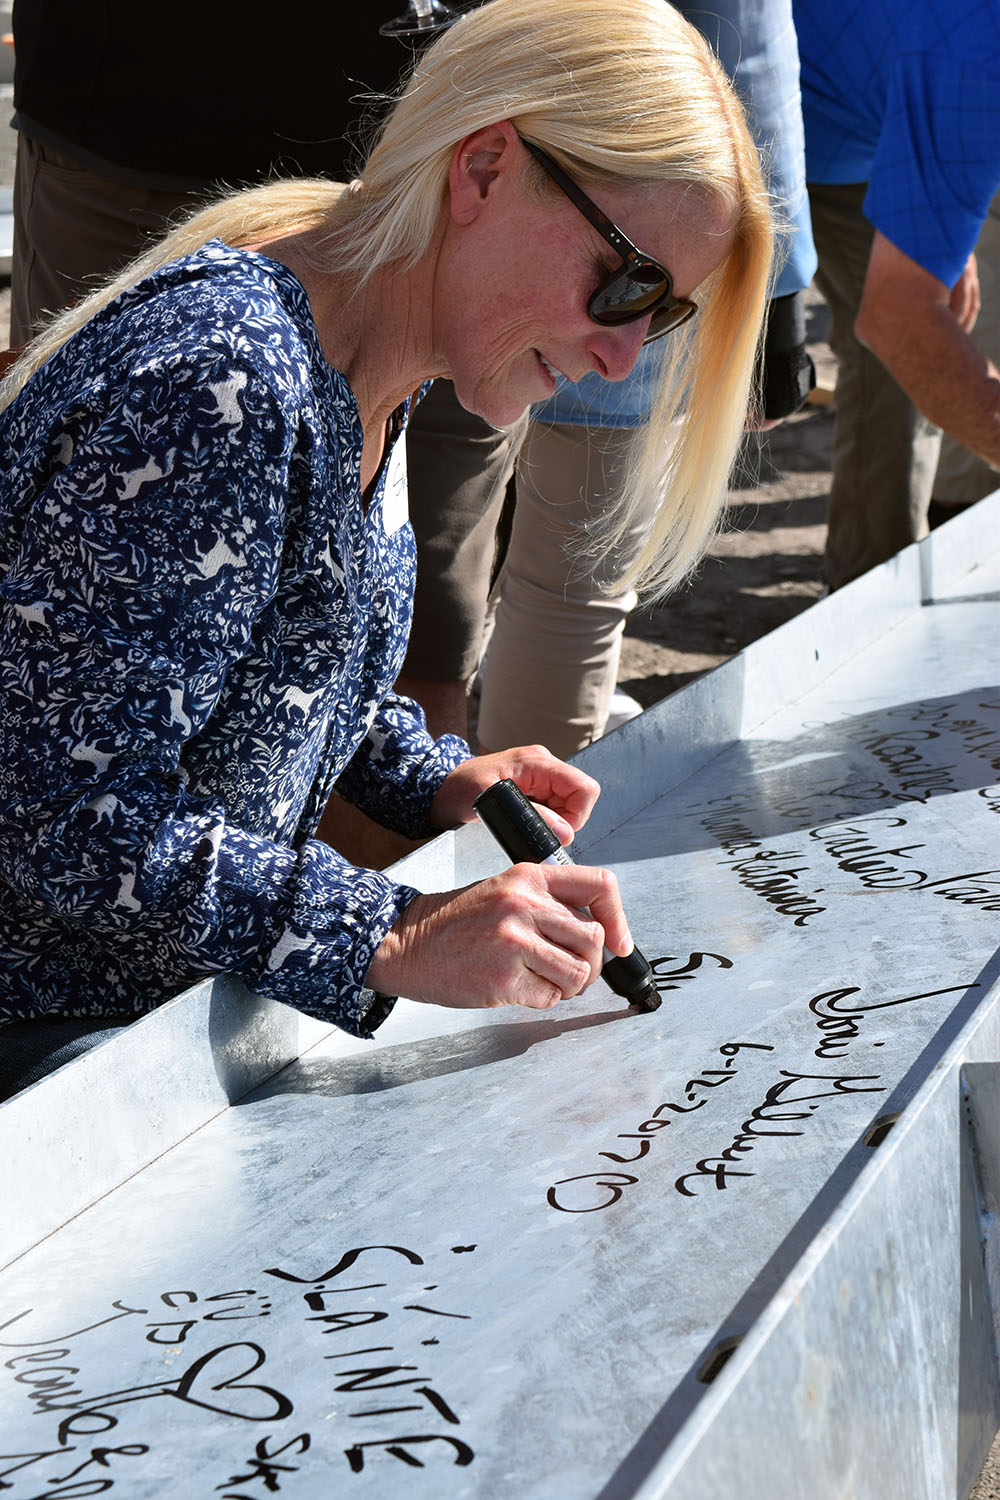 Roche Platinum club member Susan Scarth signing the beam